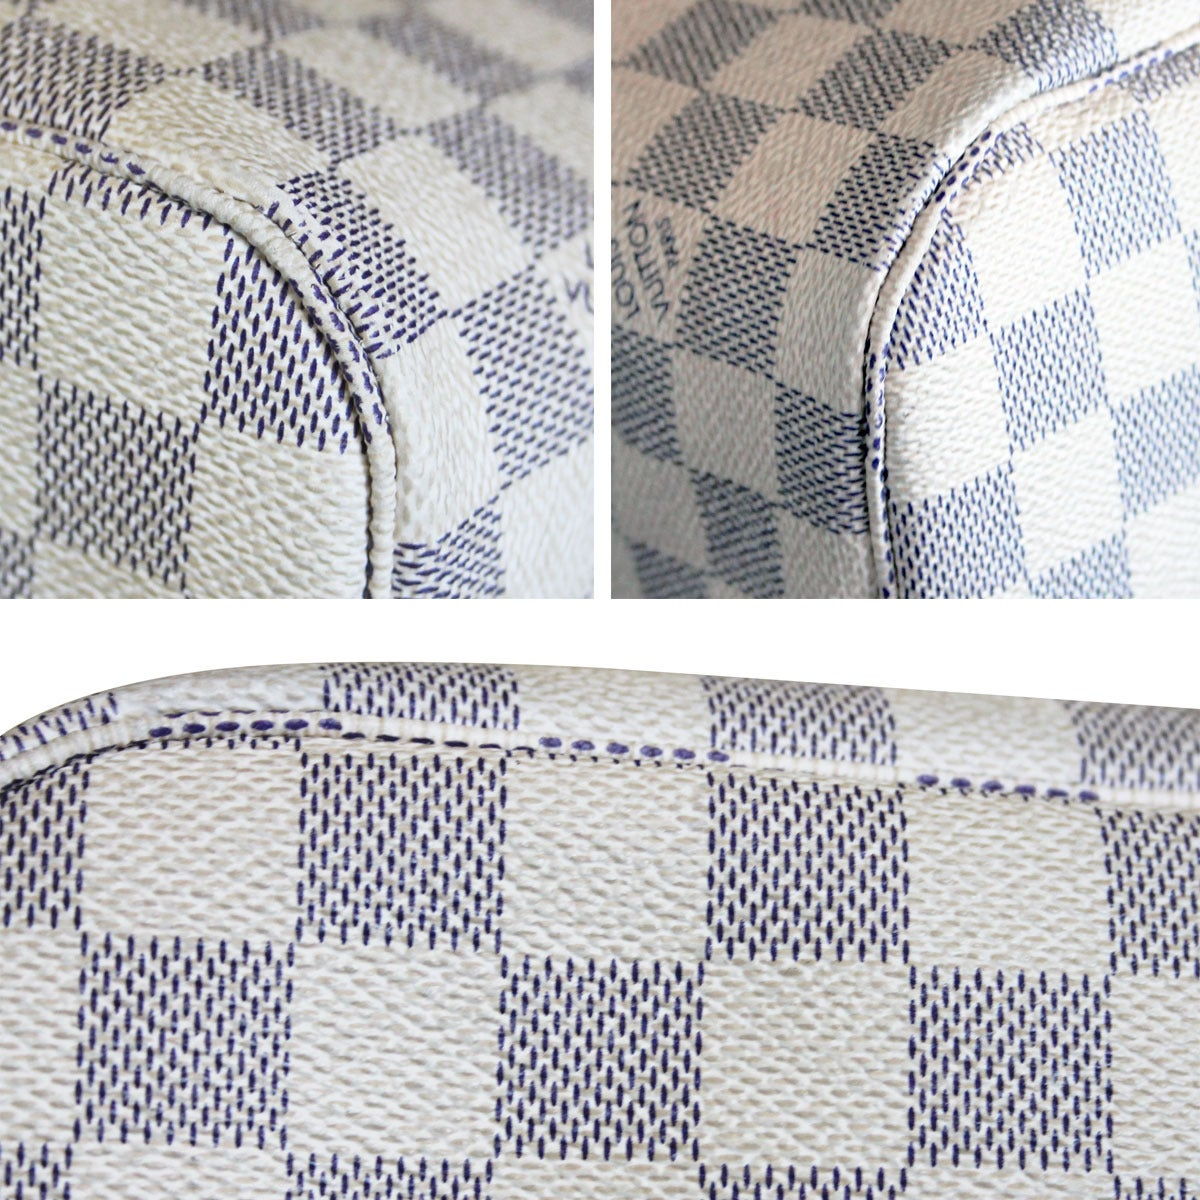 Louis Vuitton Neverfull MM Damier Azur Canvas Handbag Tote 5